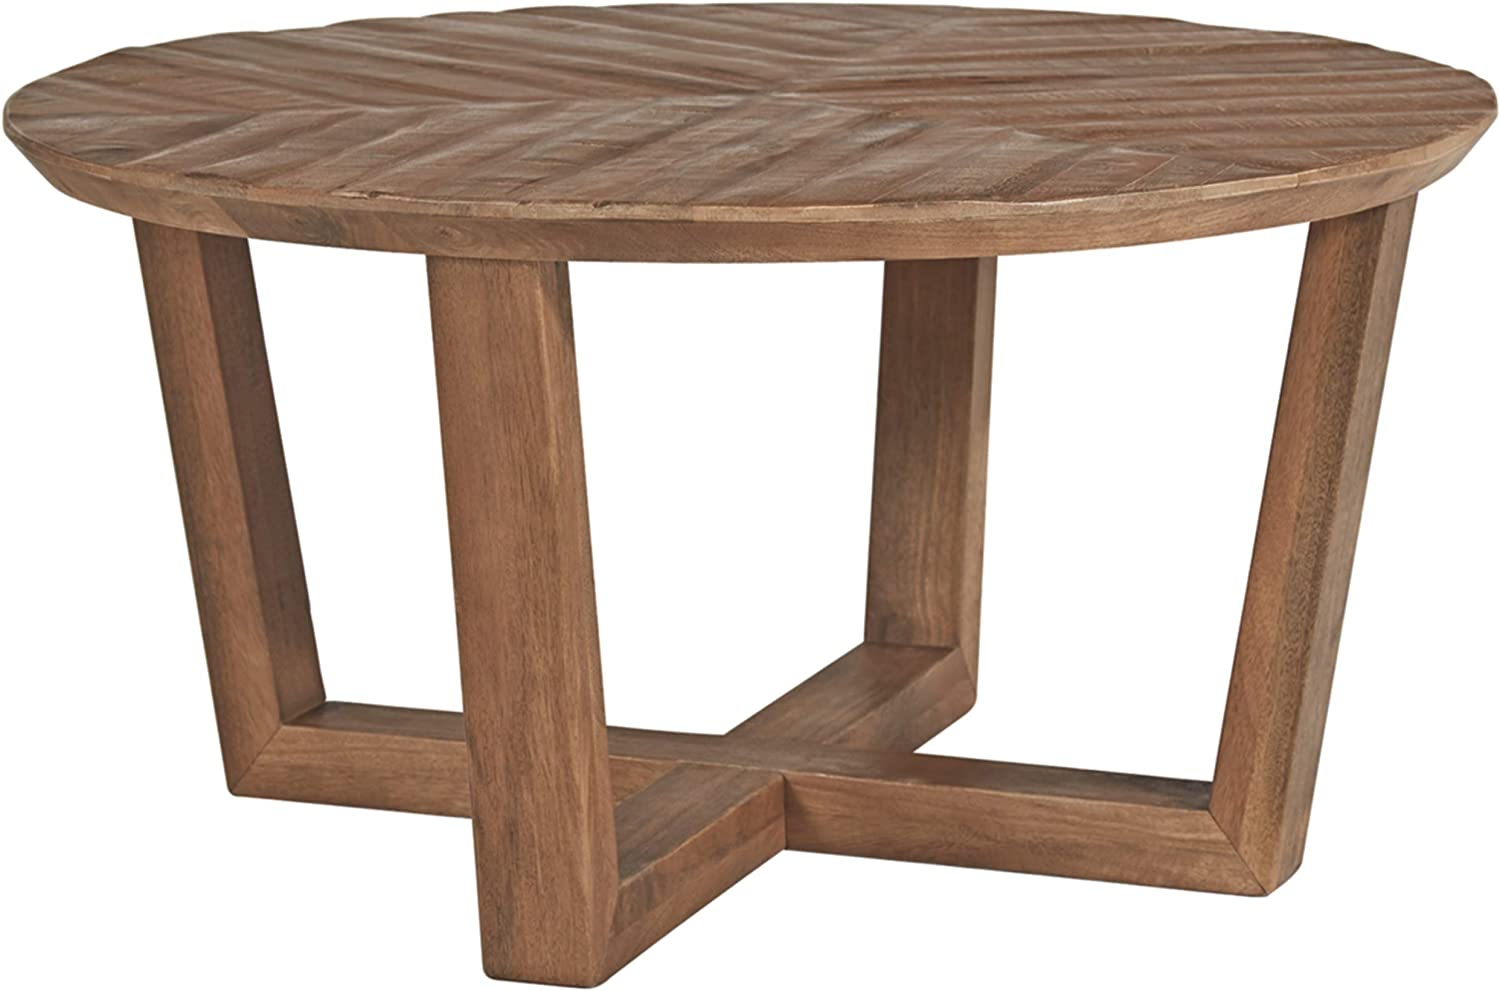 Signature Design by Ashley - Kinnshee Natural Wood Round Cocktail Table, Brown